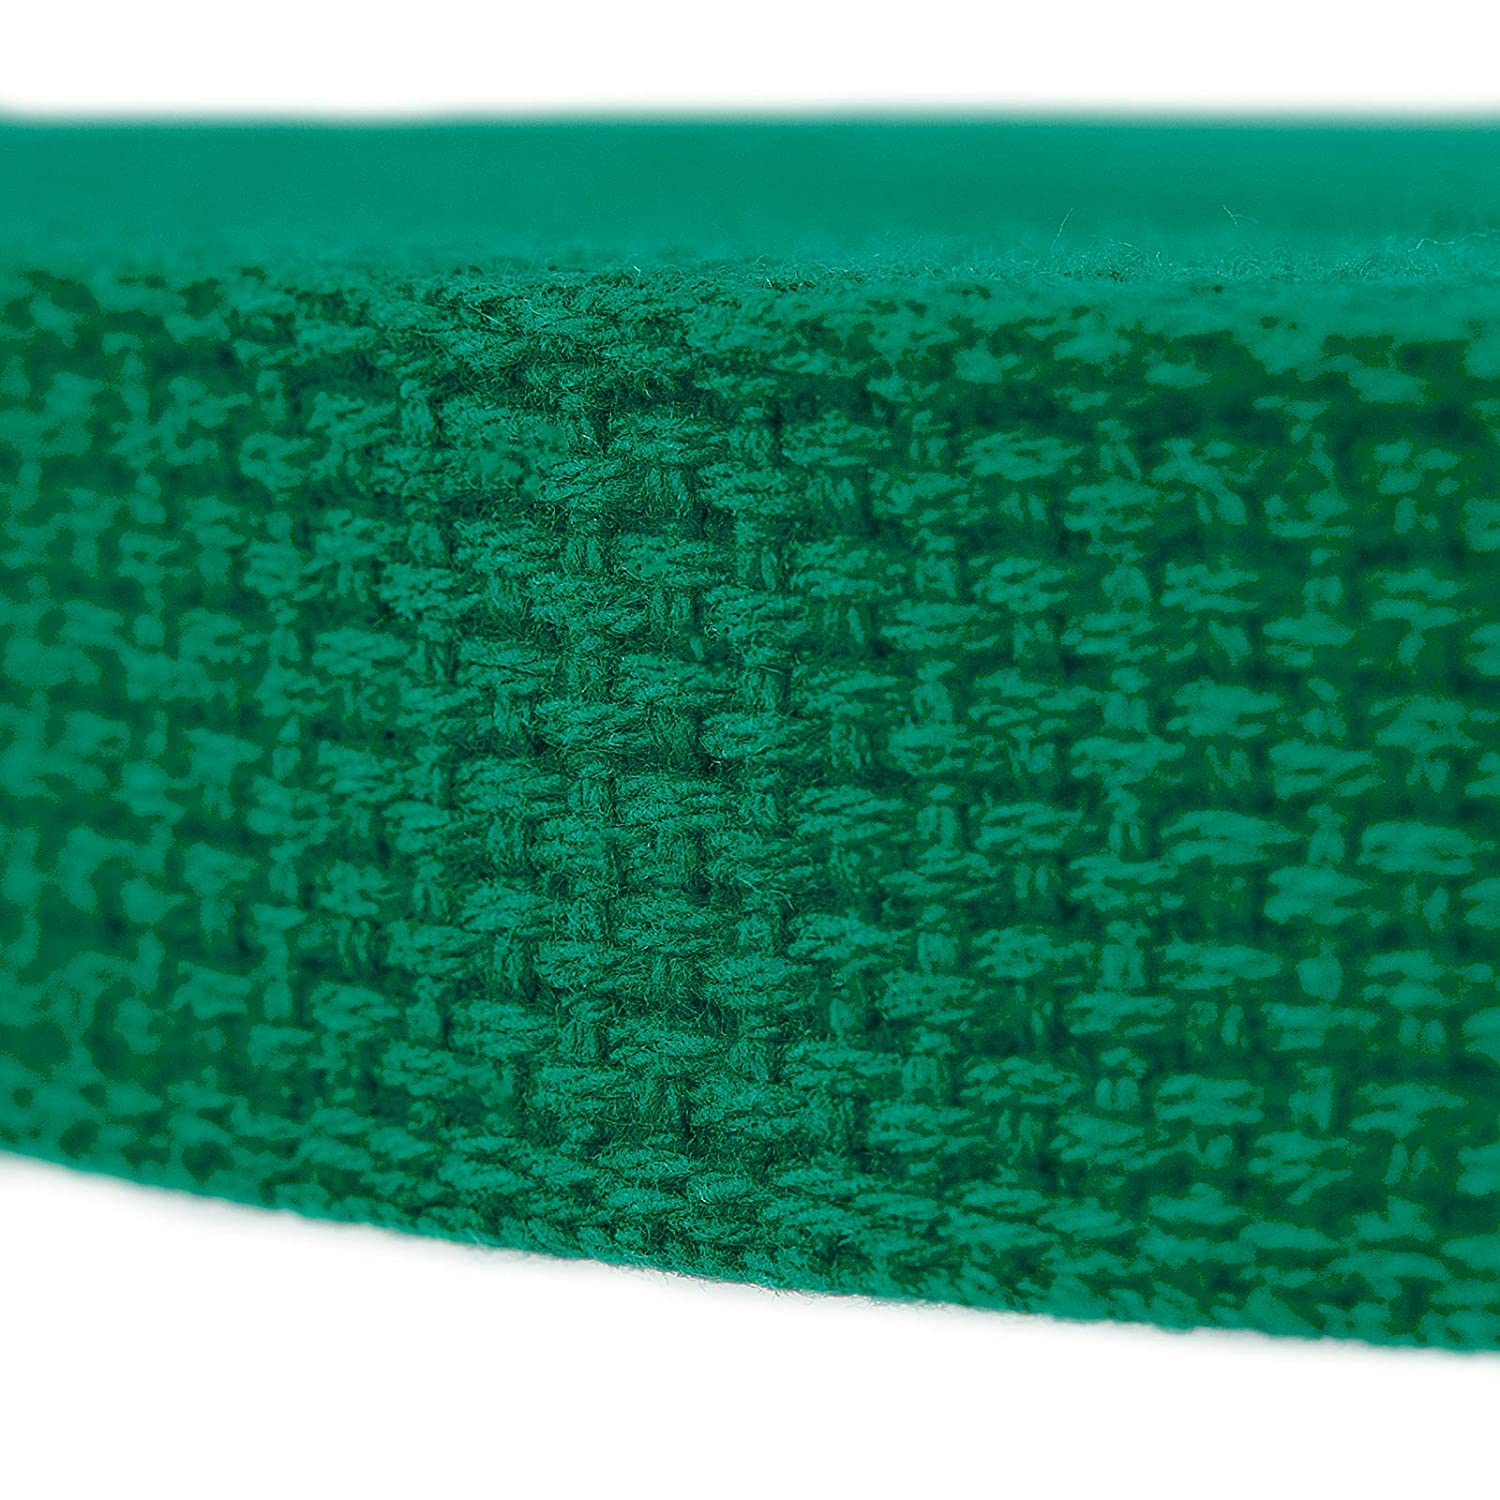 Country Brook Design 1 Inch, 25 Yards Green Heavy Cotton Webbing with 17 Vibrant Color Options